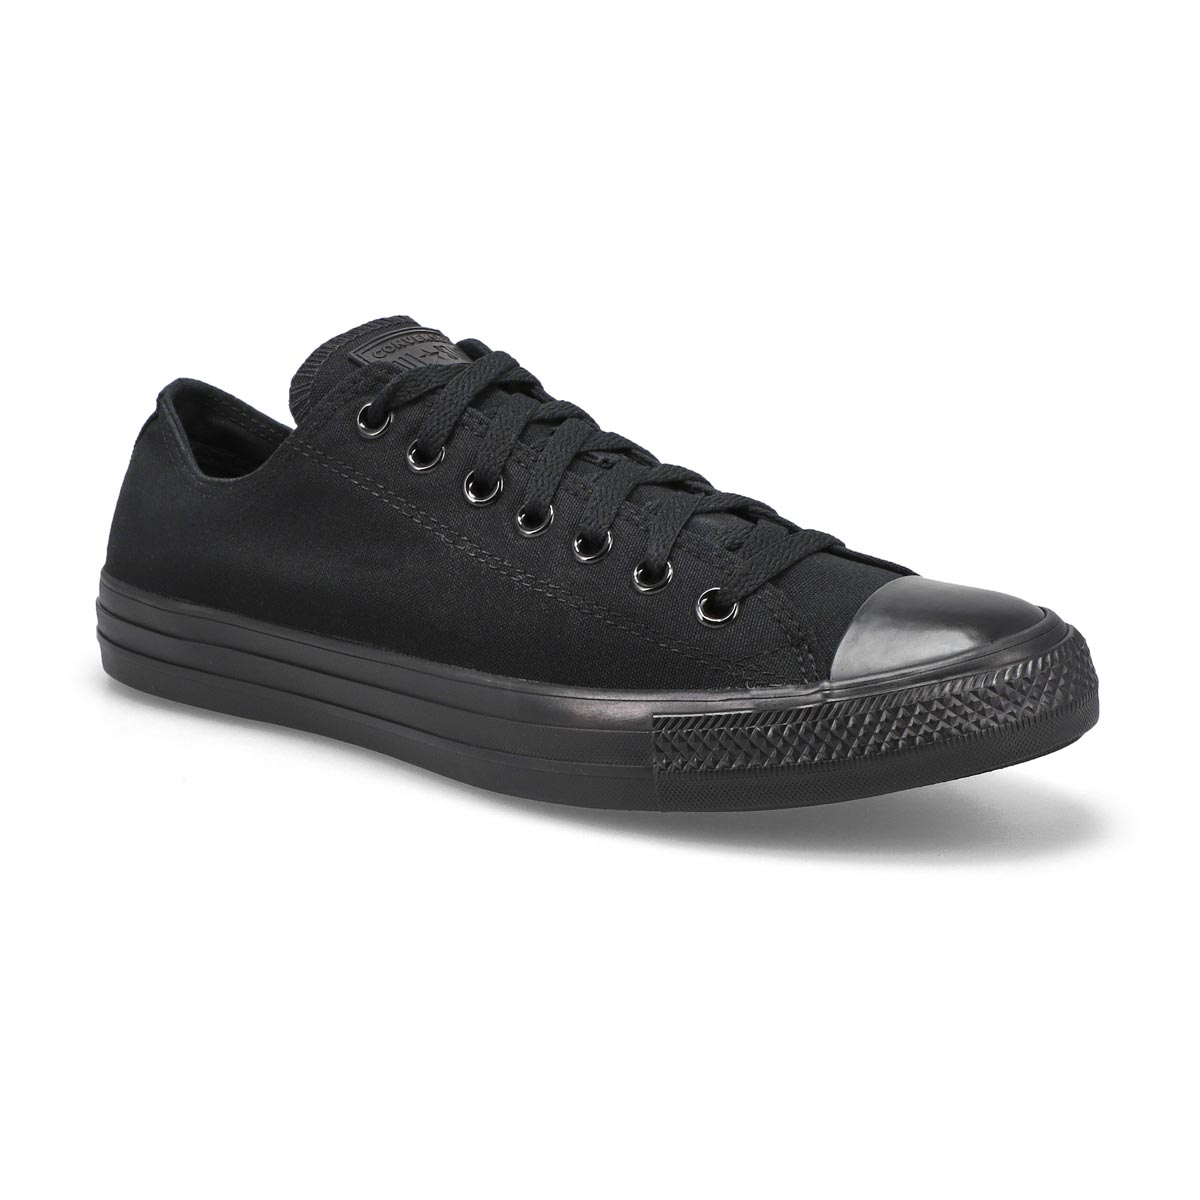 Converse All Star Ox Chuck Scarpe Sneaker Canvas Black Monochrome m5039c